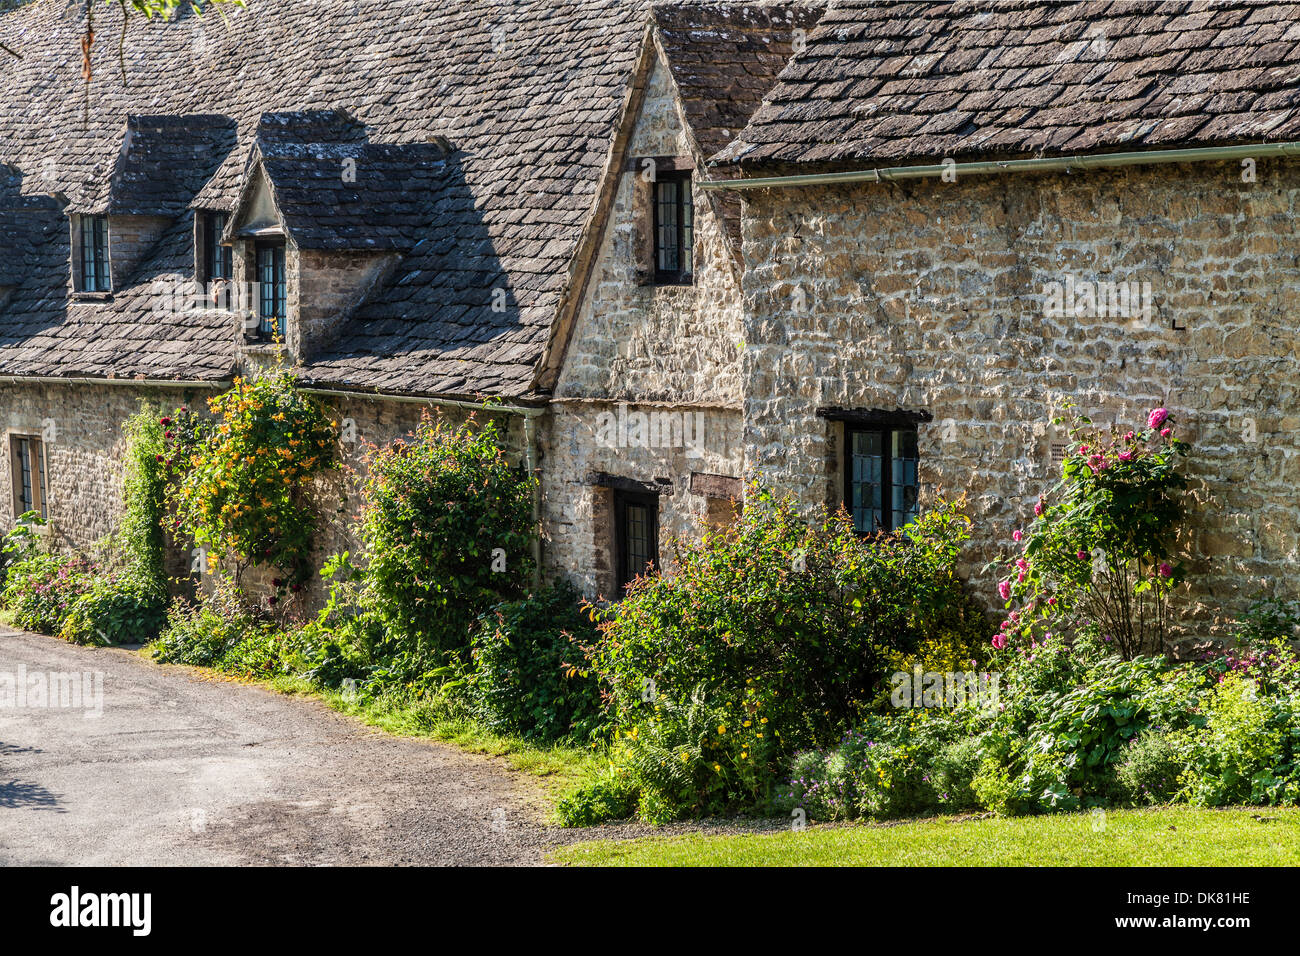 Part of the famous Arlington Row 14th century weavers' cottages in the Cotswold village of Bibury. Stock Photo